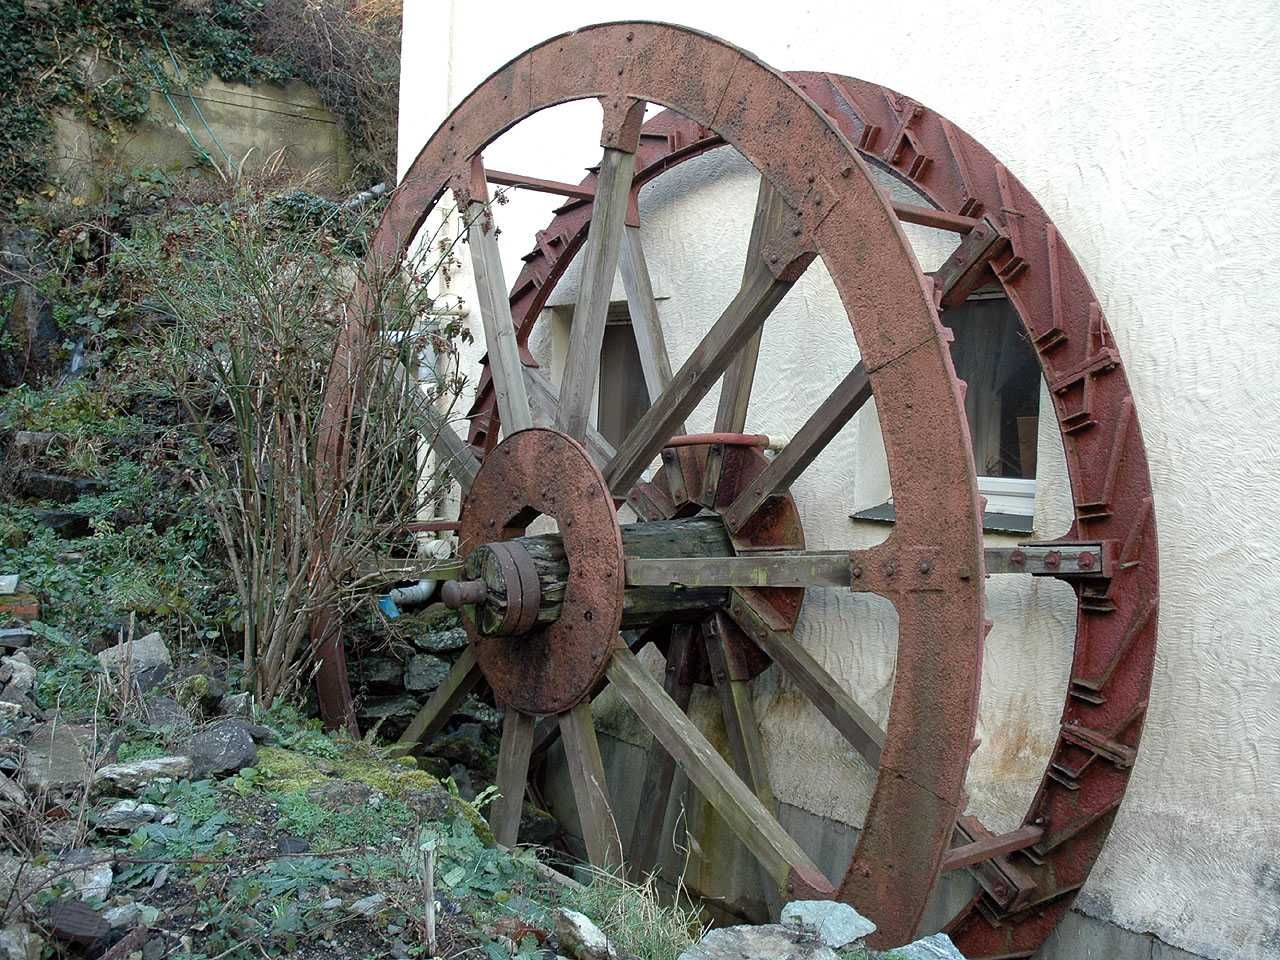 Bodffordd, Melin Frogwy Water Mill - Water Wheel Close Up.jpg (1280×960)